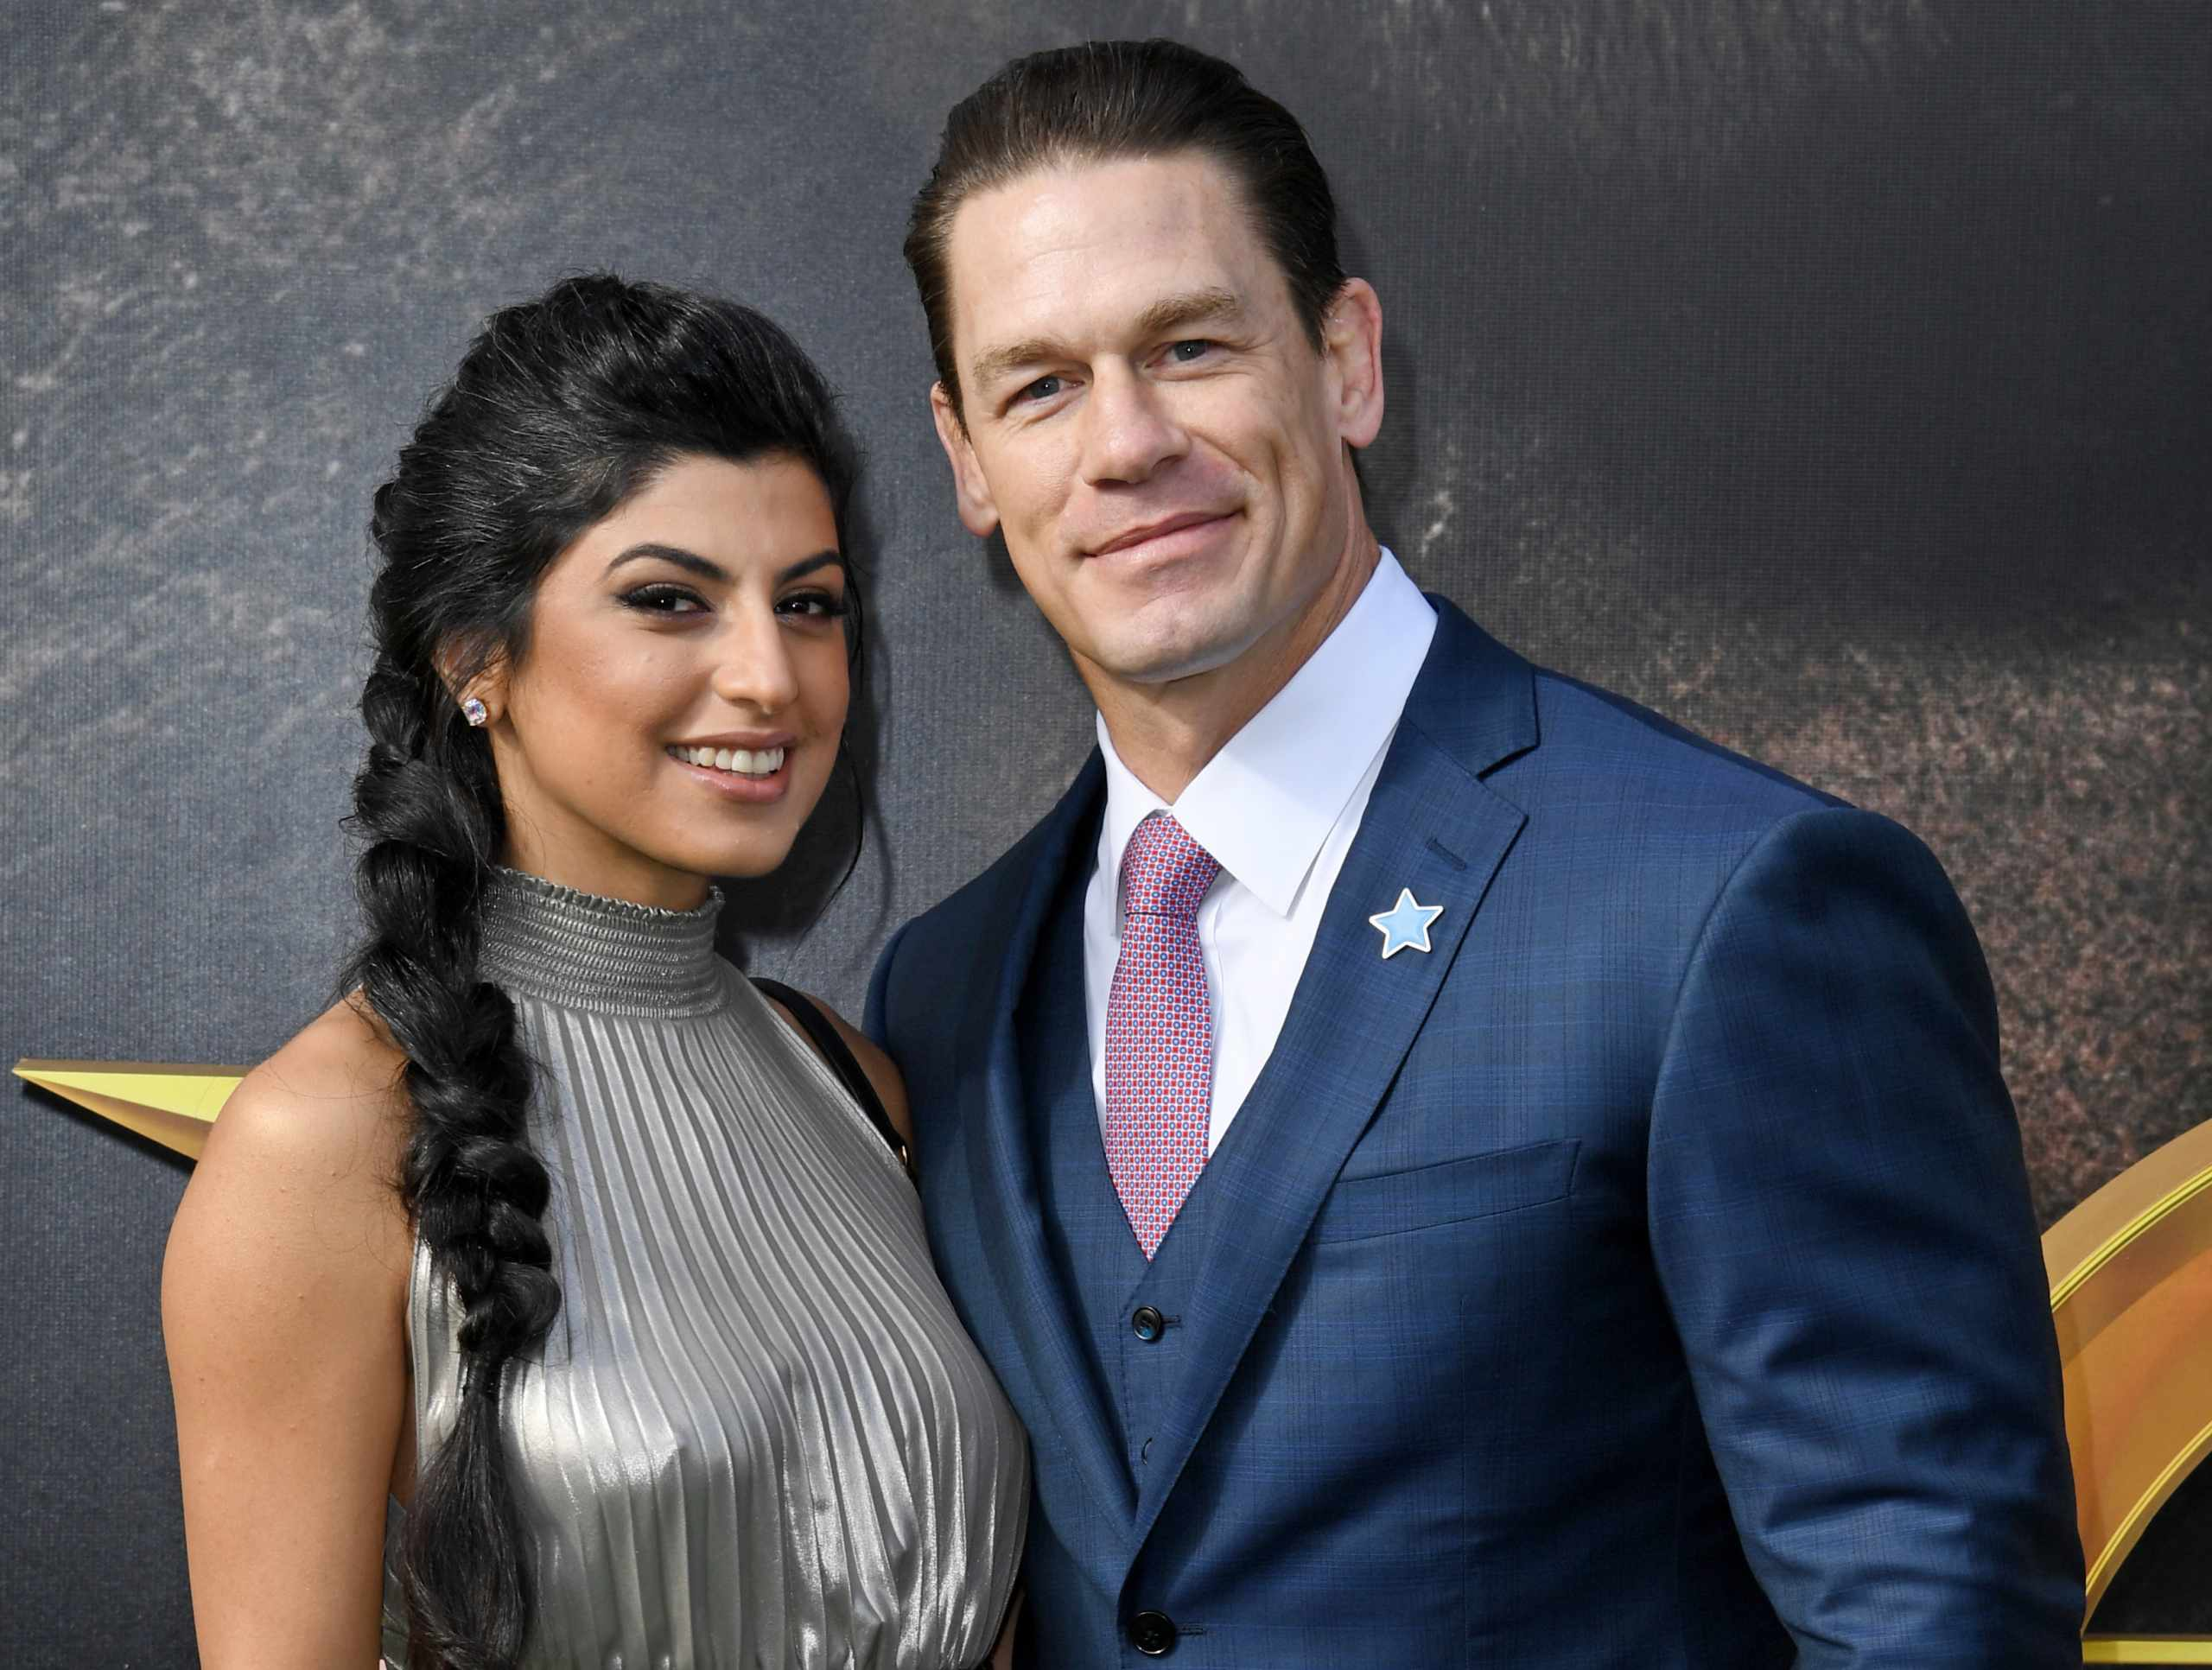 John Cena Marries Shay Shariatzadeh